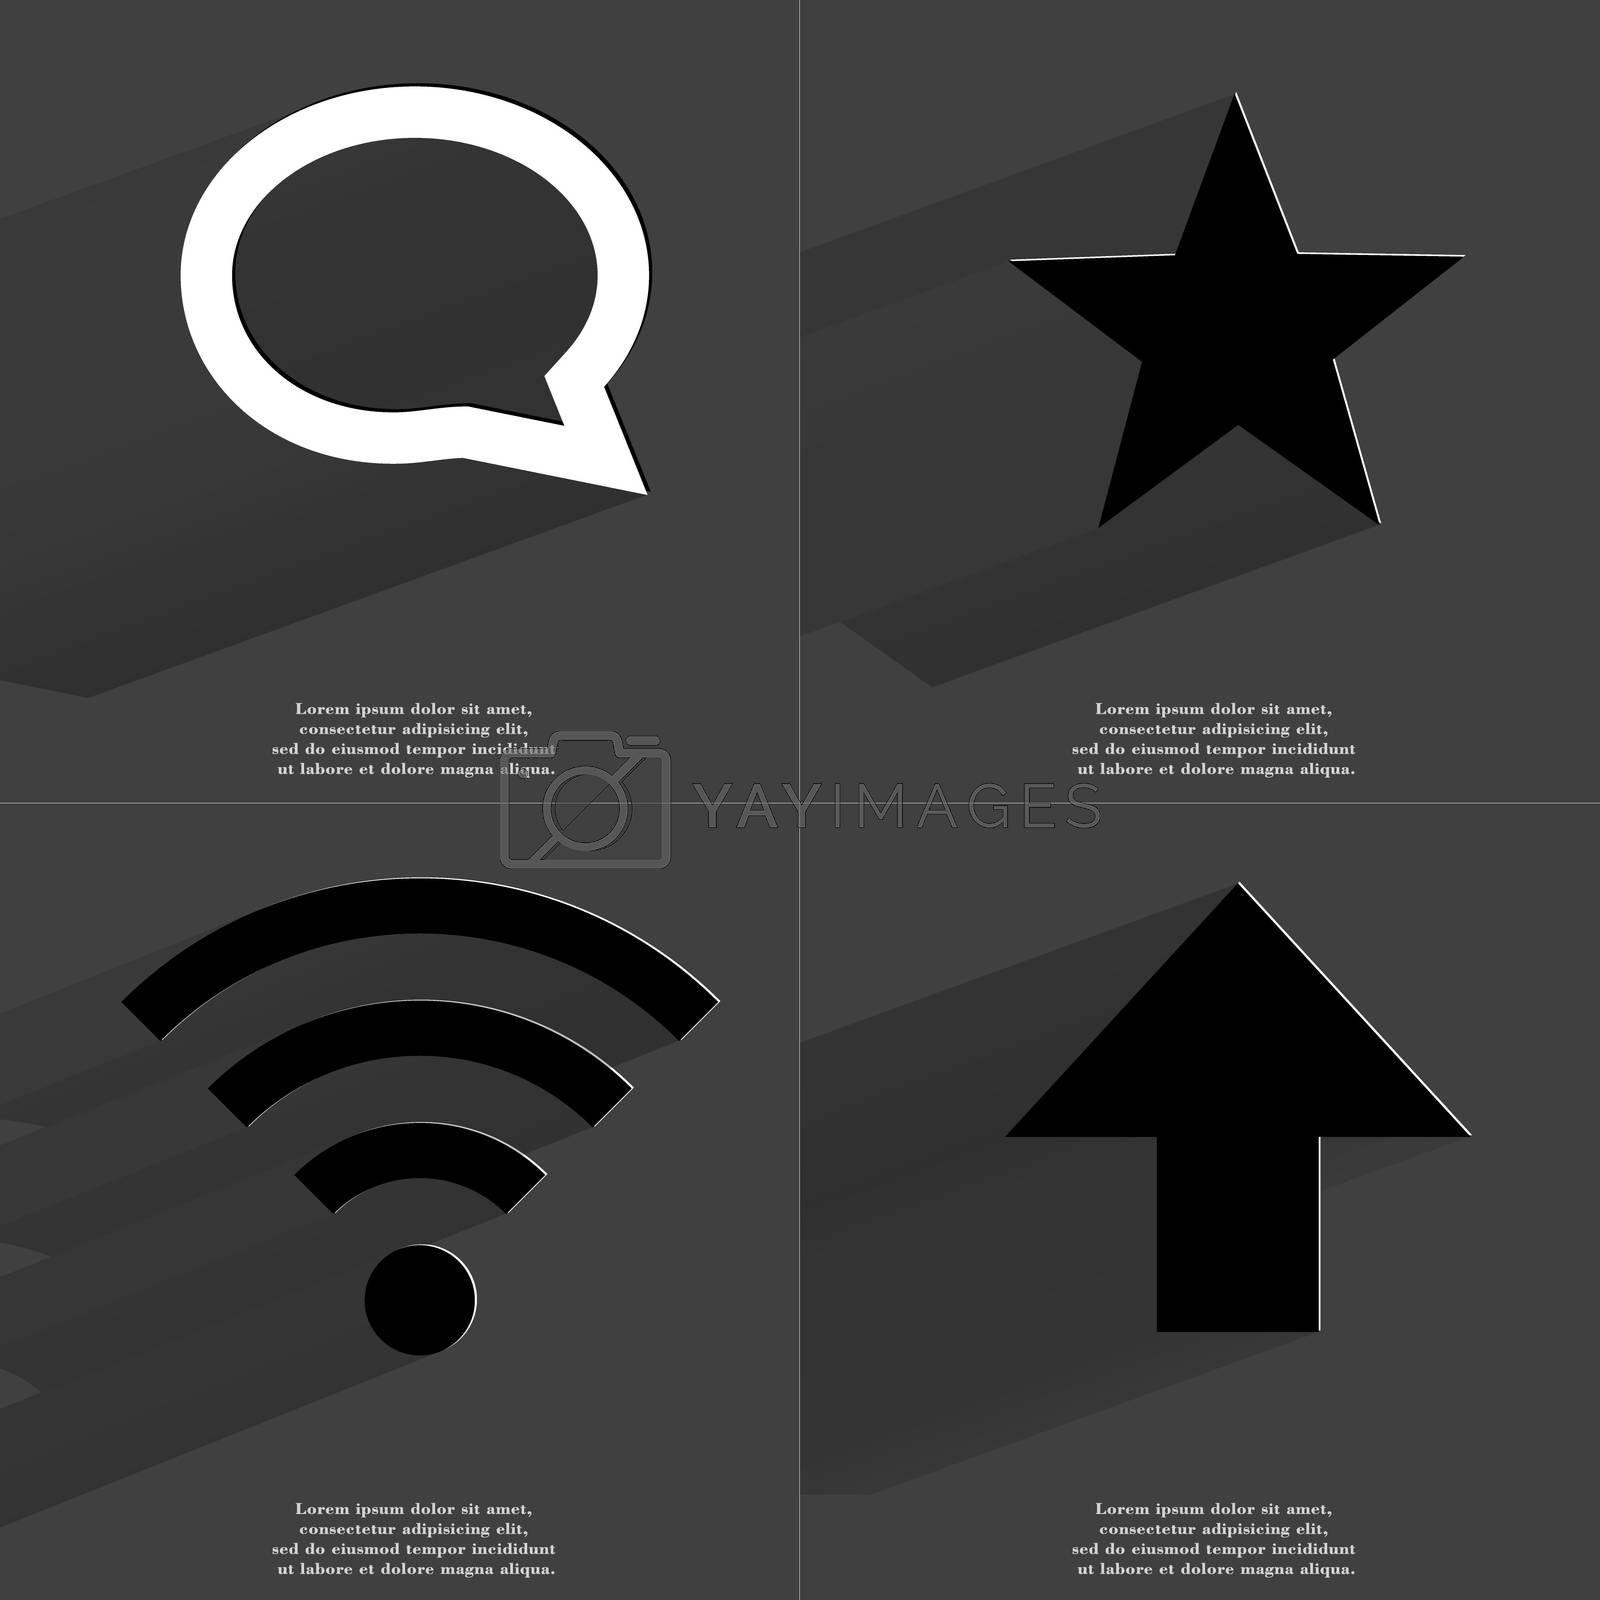 Royalty free image of Chat bubble, Star, WLAN icon, Arrow directed upwards. Symbols with long shadow. Flat design by serhii_lohvyniuk